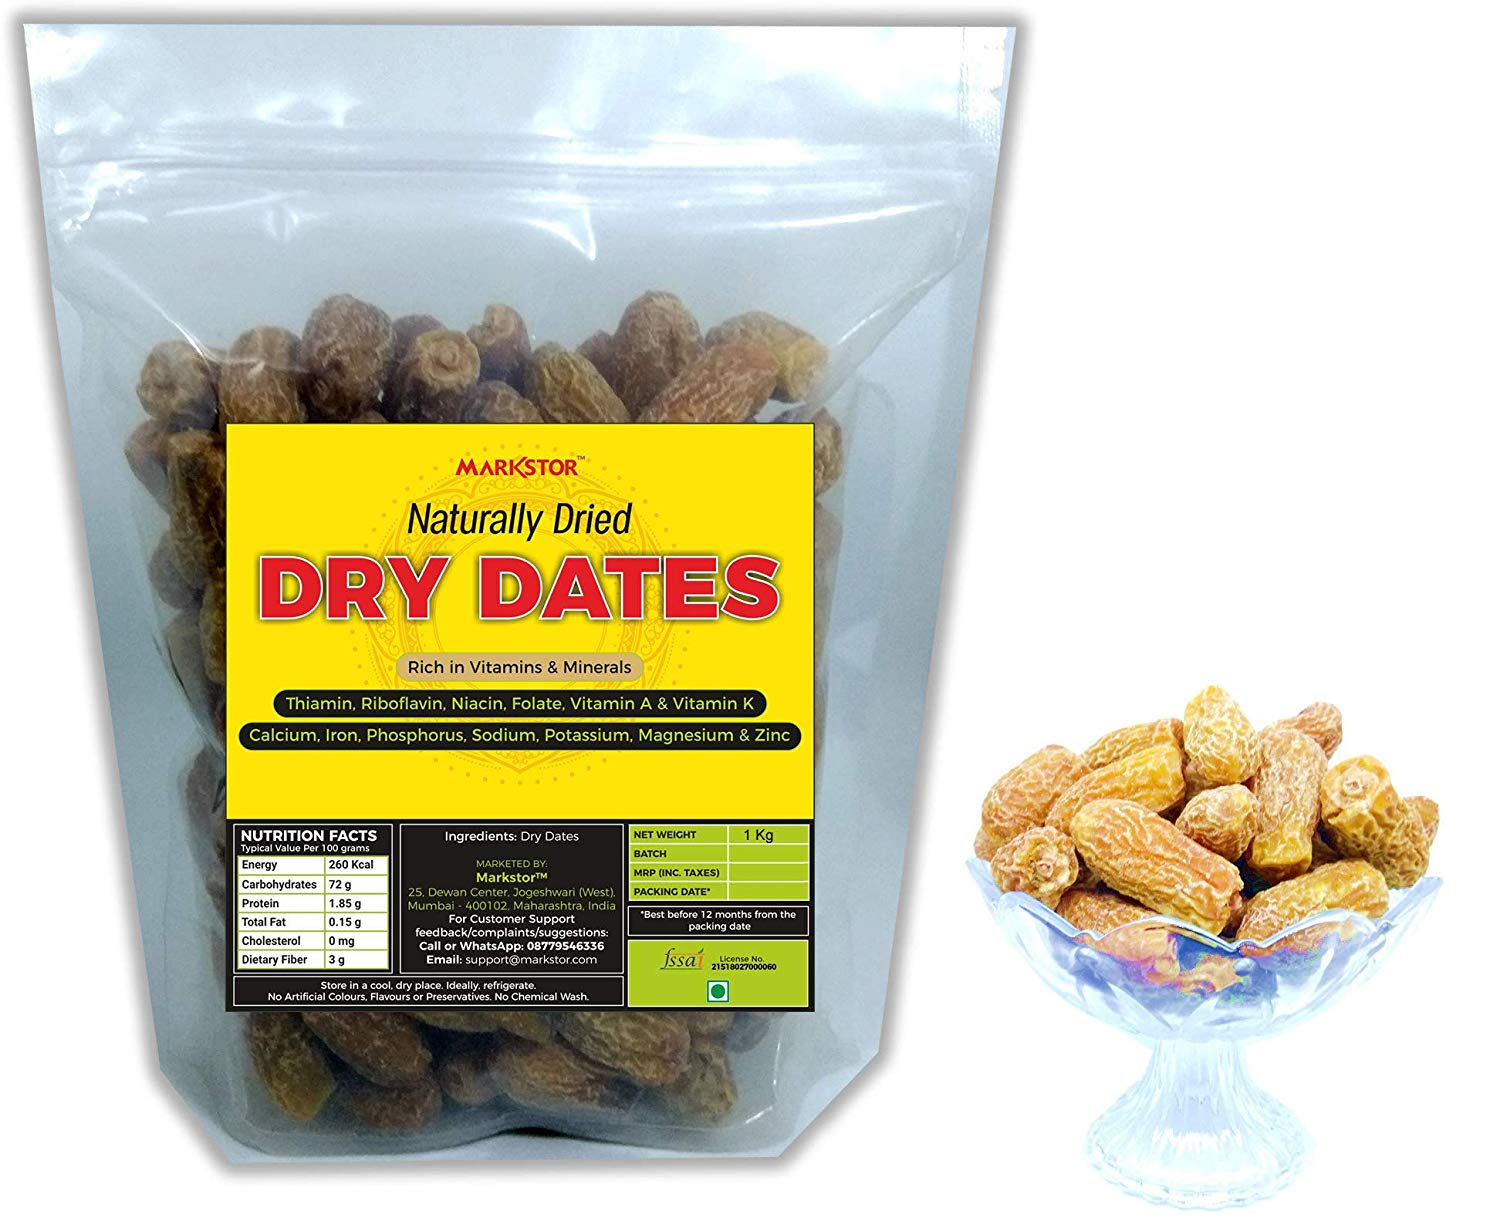 Markstor-Naturally-Dried-Dry-Dates-1-Kg-B077Y34ZV2-2